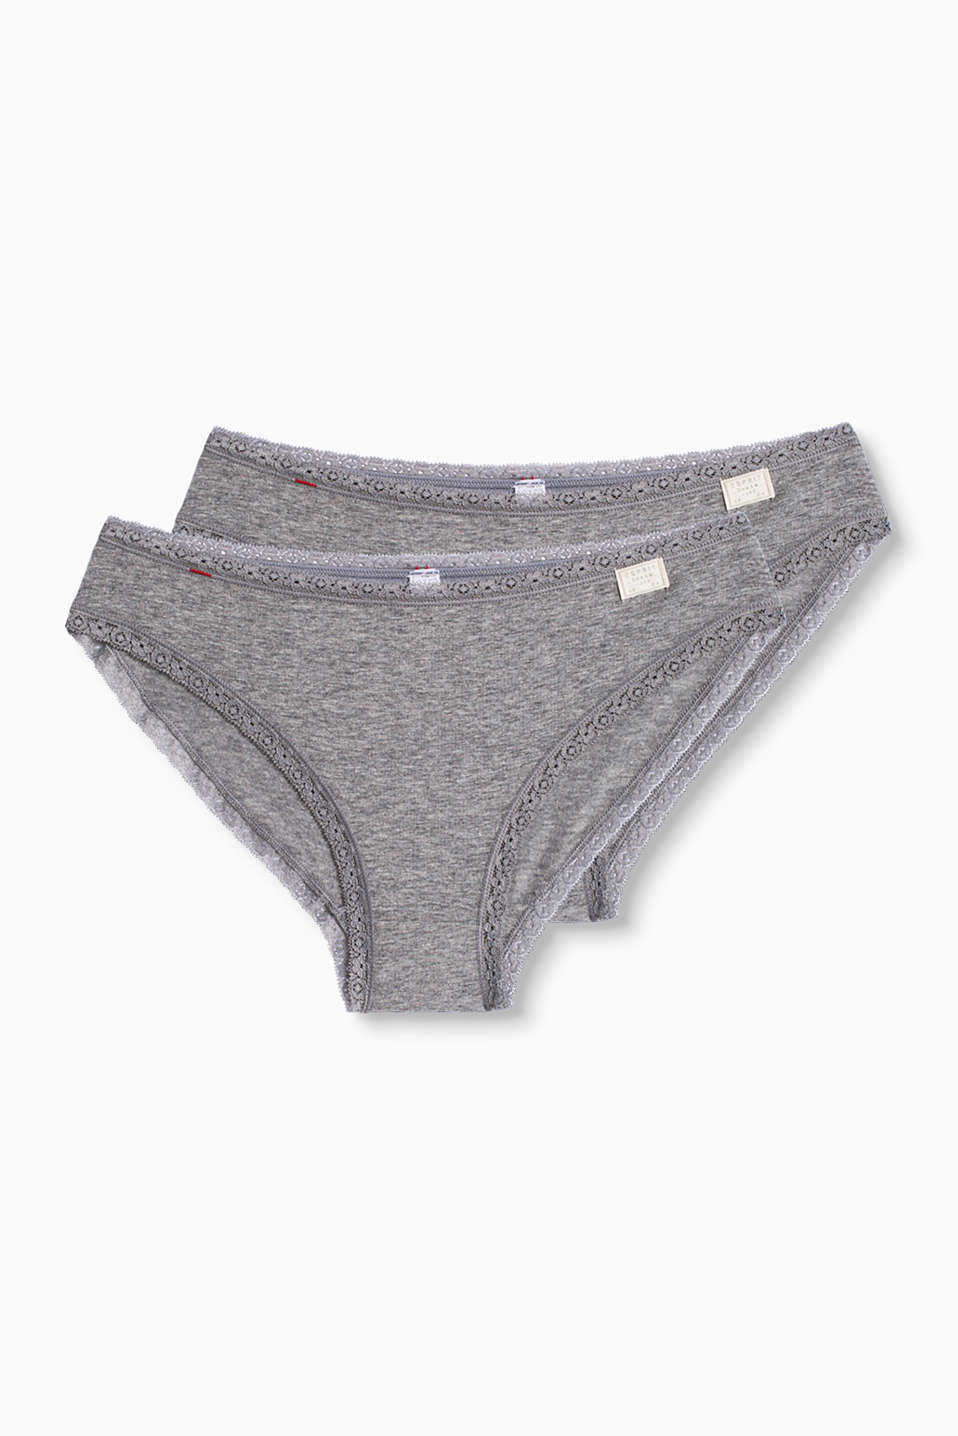 Esprit - Lot de 2 slips en coton stretch